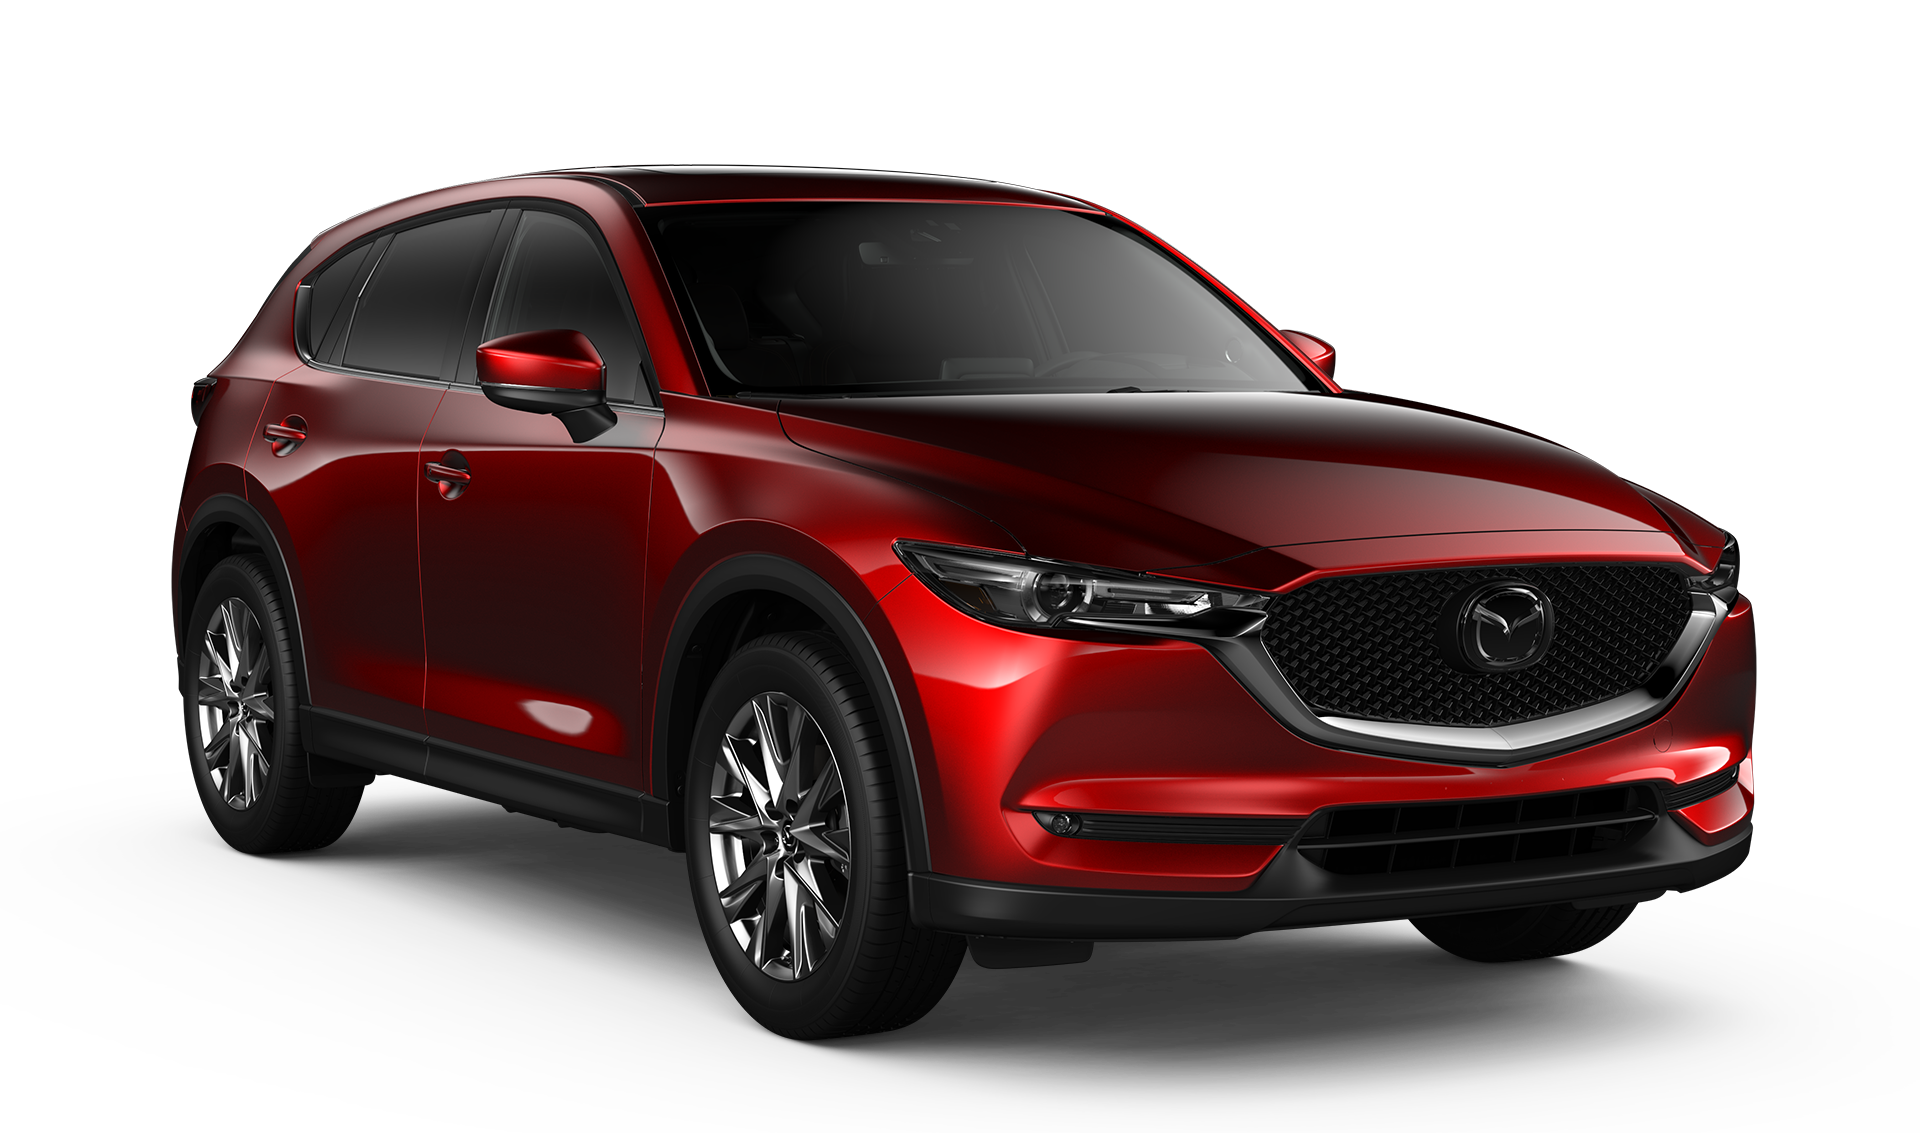 Mazda CX-5 Signature, available at Forest City Mazda in London Ontario